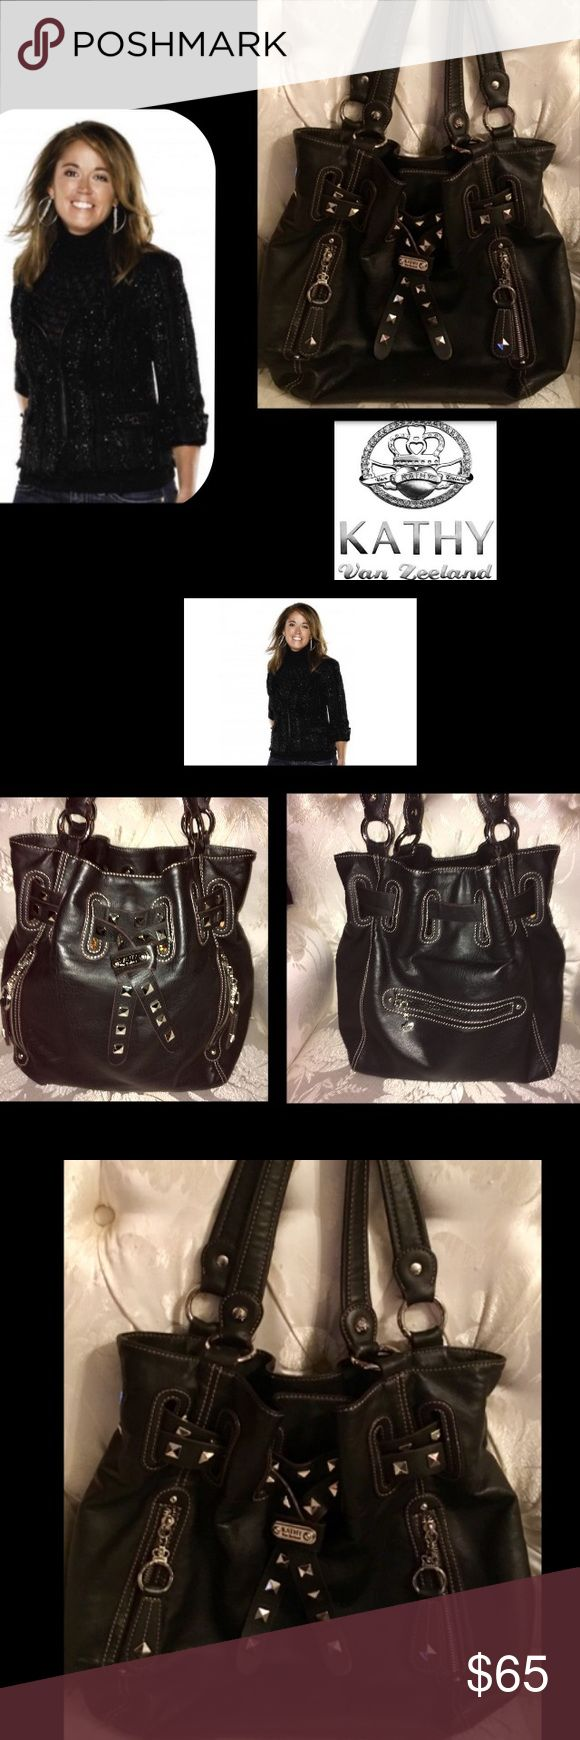 """🦋Kathy Van Zeeland 🖤Exotic Leather Stud Bag Silver grommets and tan stitching adorn this gorgeous,elegant black leather🖤satchel bag🖤3 compartments🖤first side has zip pocket🖤center zip pocket🖤third side has wall pockets for easy organization in the spacious bag2 front & one back zip pocket🖤logo hardware🖤magnetic & drawstring closure on this beauty🖤glam gold lining for sheer elegance🖤 14"""" W🖤16"""" H 🖤total drop 24"""" 🖤I used it to jet set a handful of times🖤pristine condition🖤very…"""